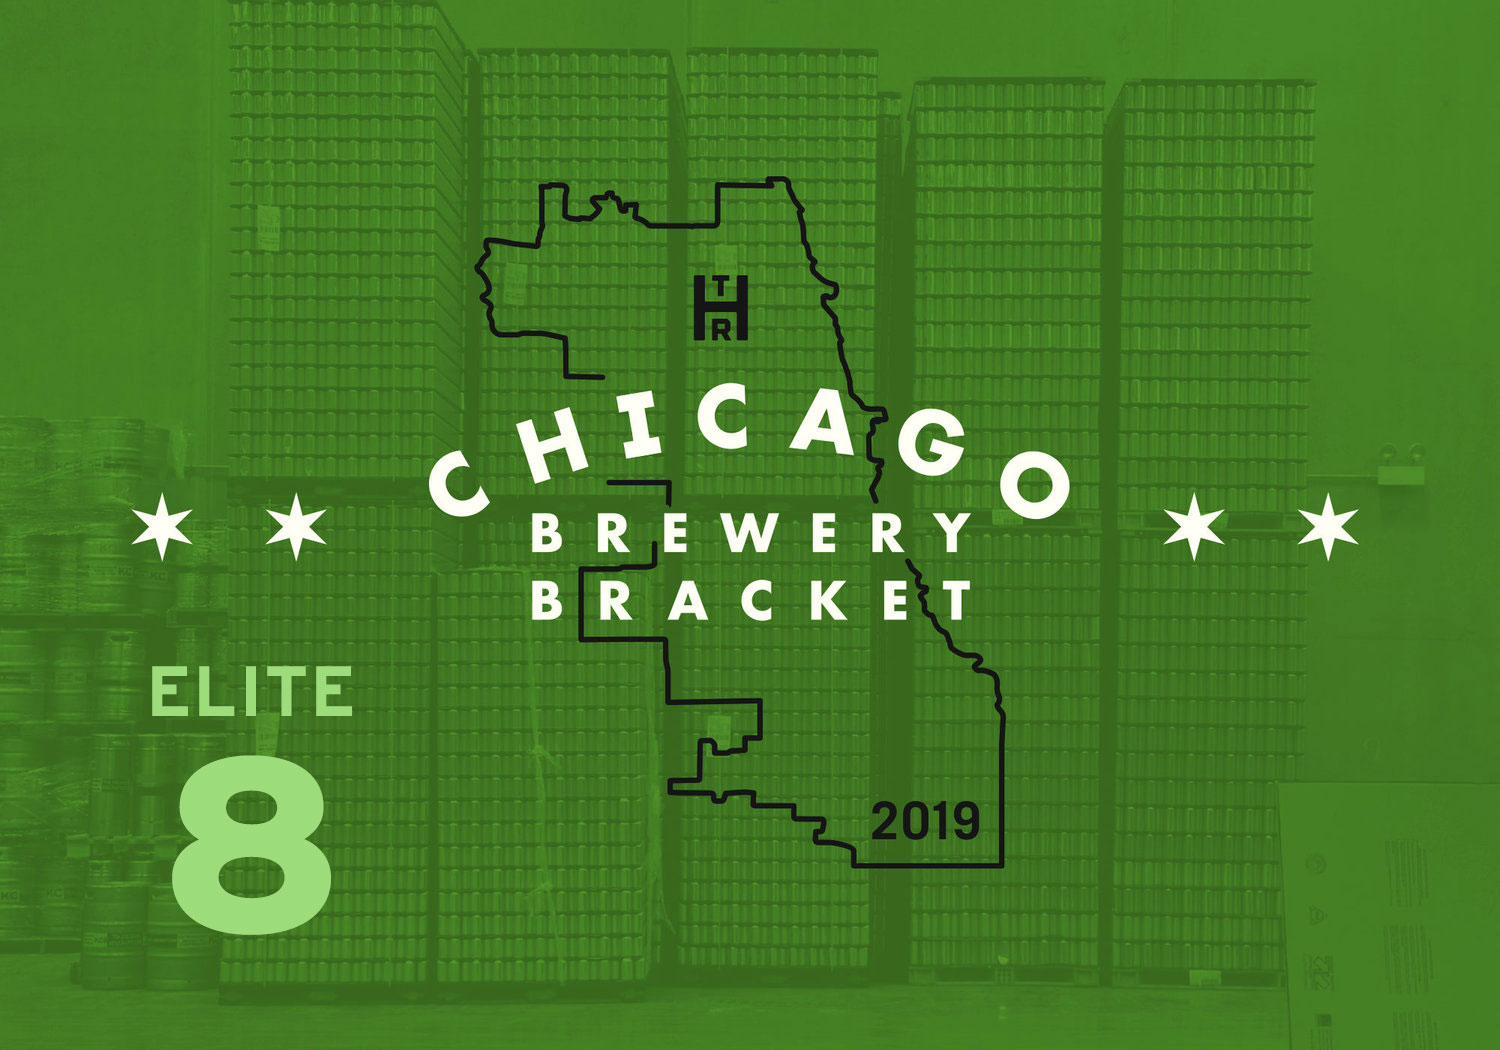 2019 Chicago Brewery Bracket: Elite 8